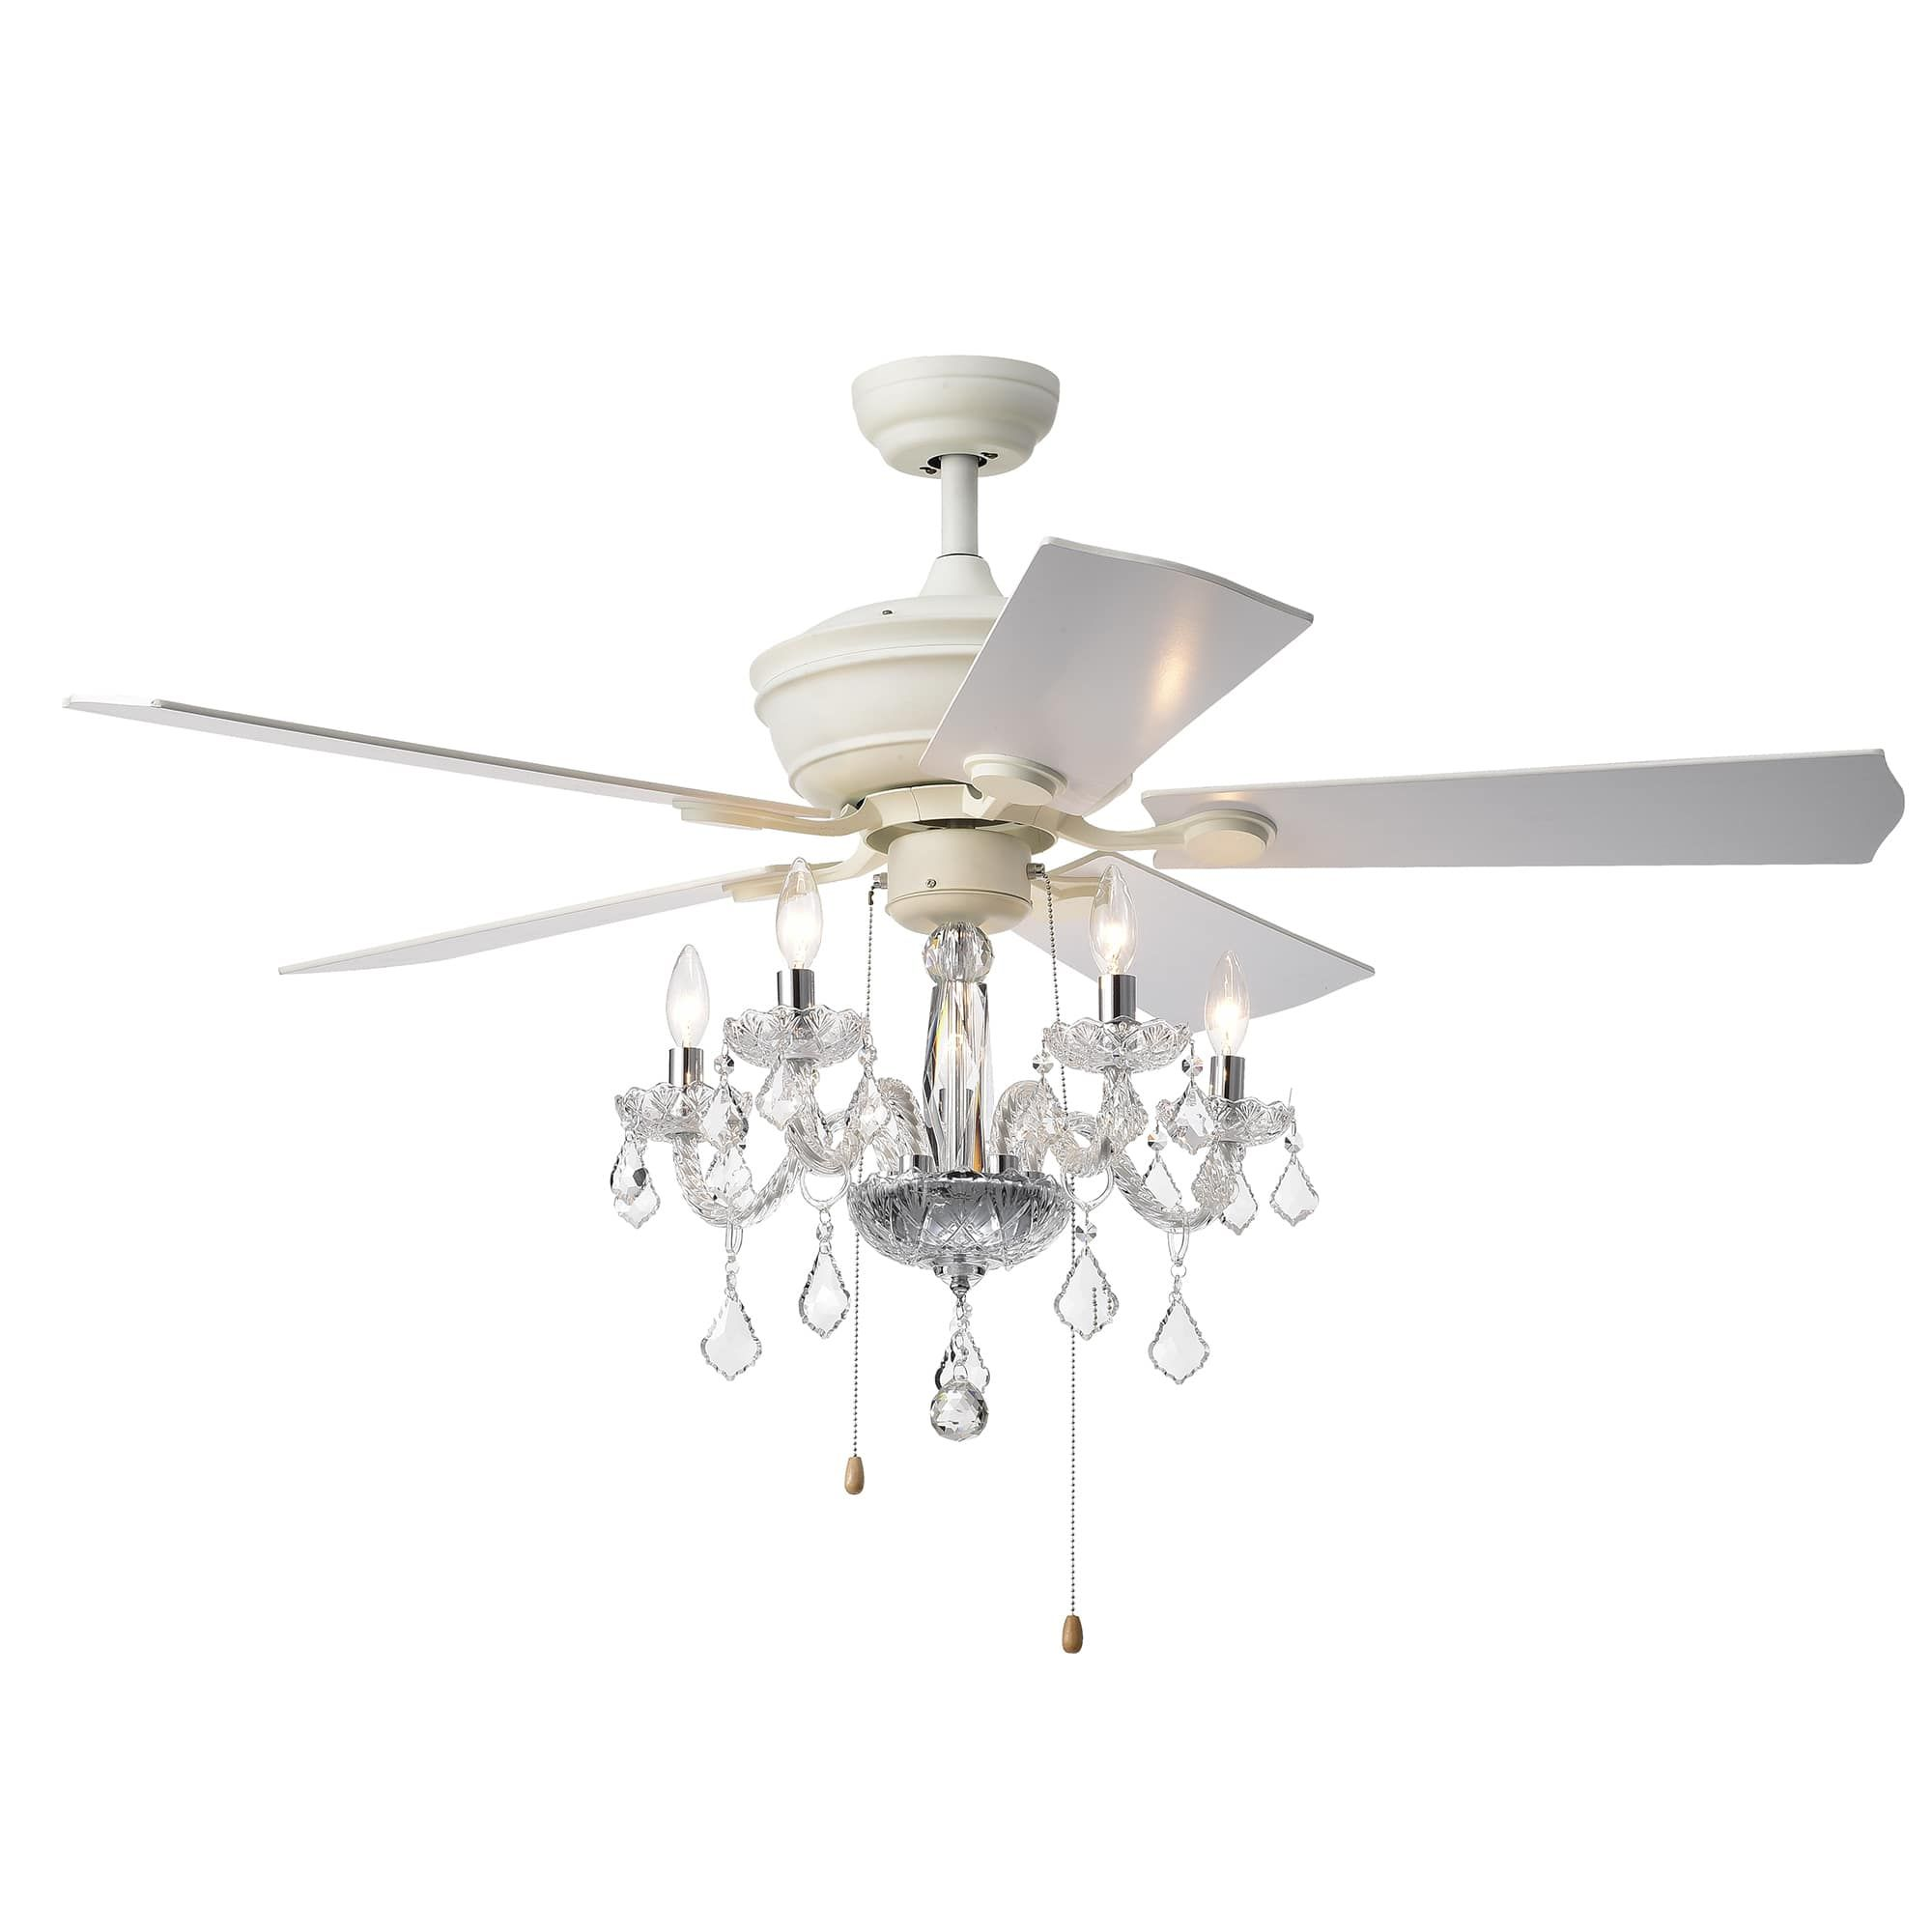 Havorand Ii 5 Light Crystal 5 Blade 52 Inch White Finish Ceiling